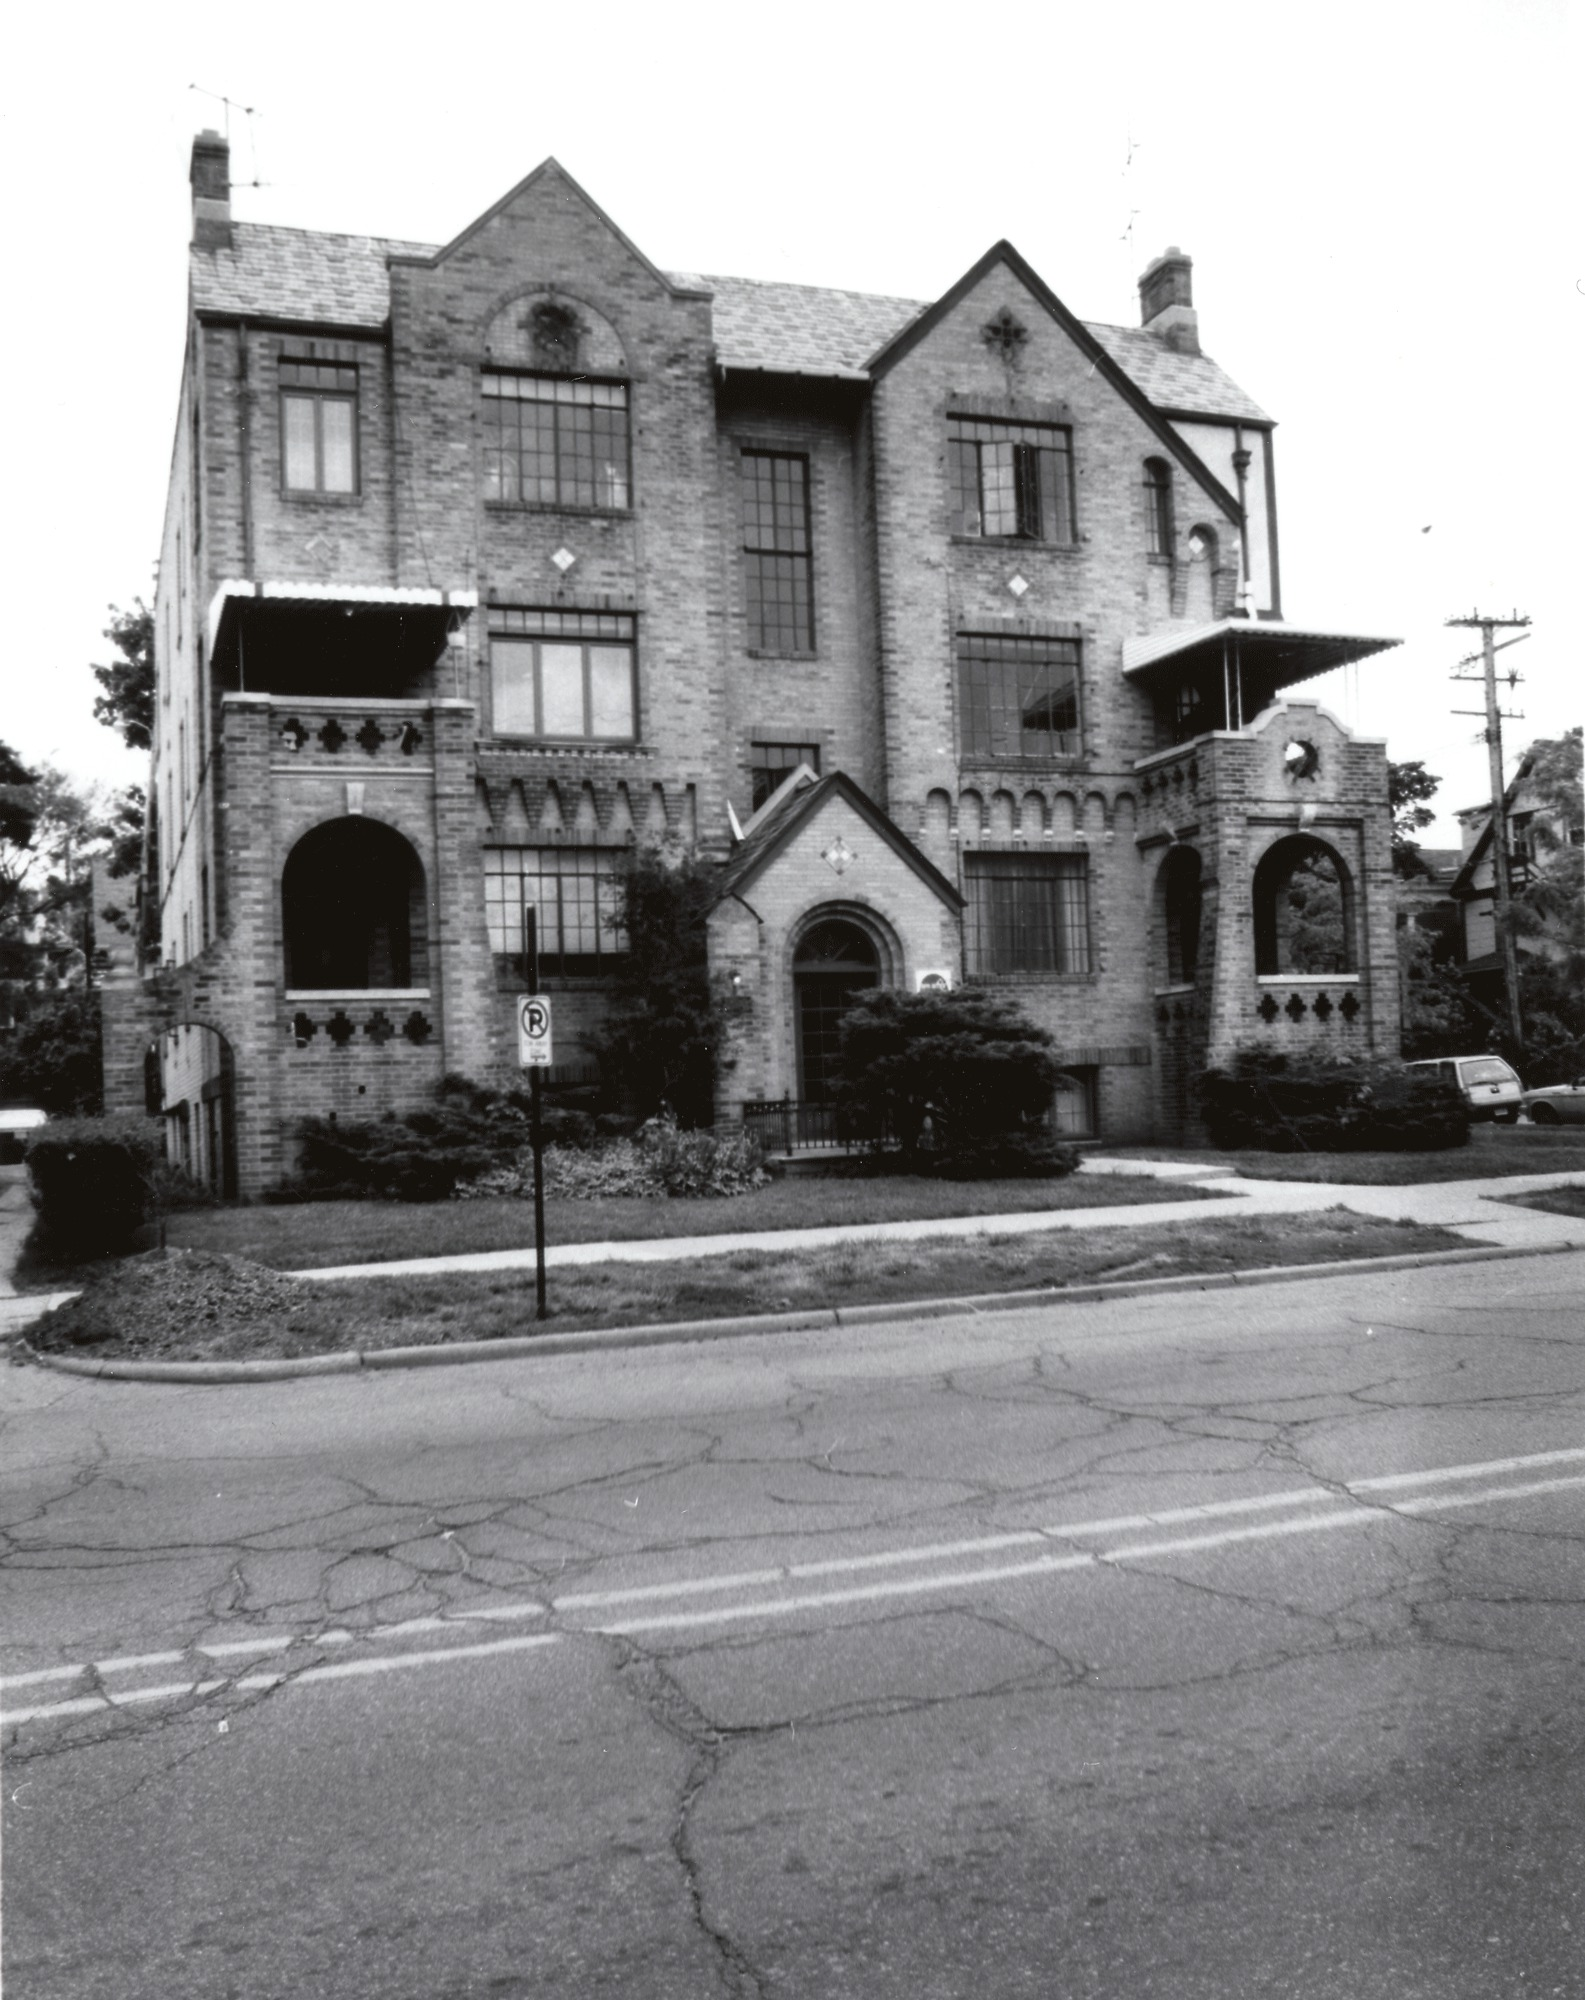 Wil-Dean and Duncan Manor Apartments, 1928 image